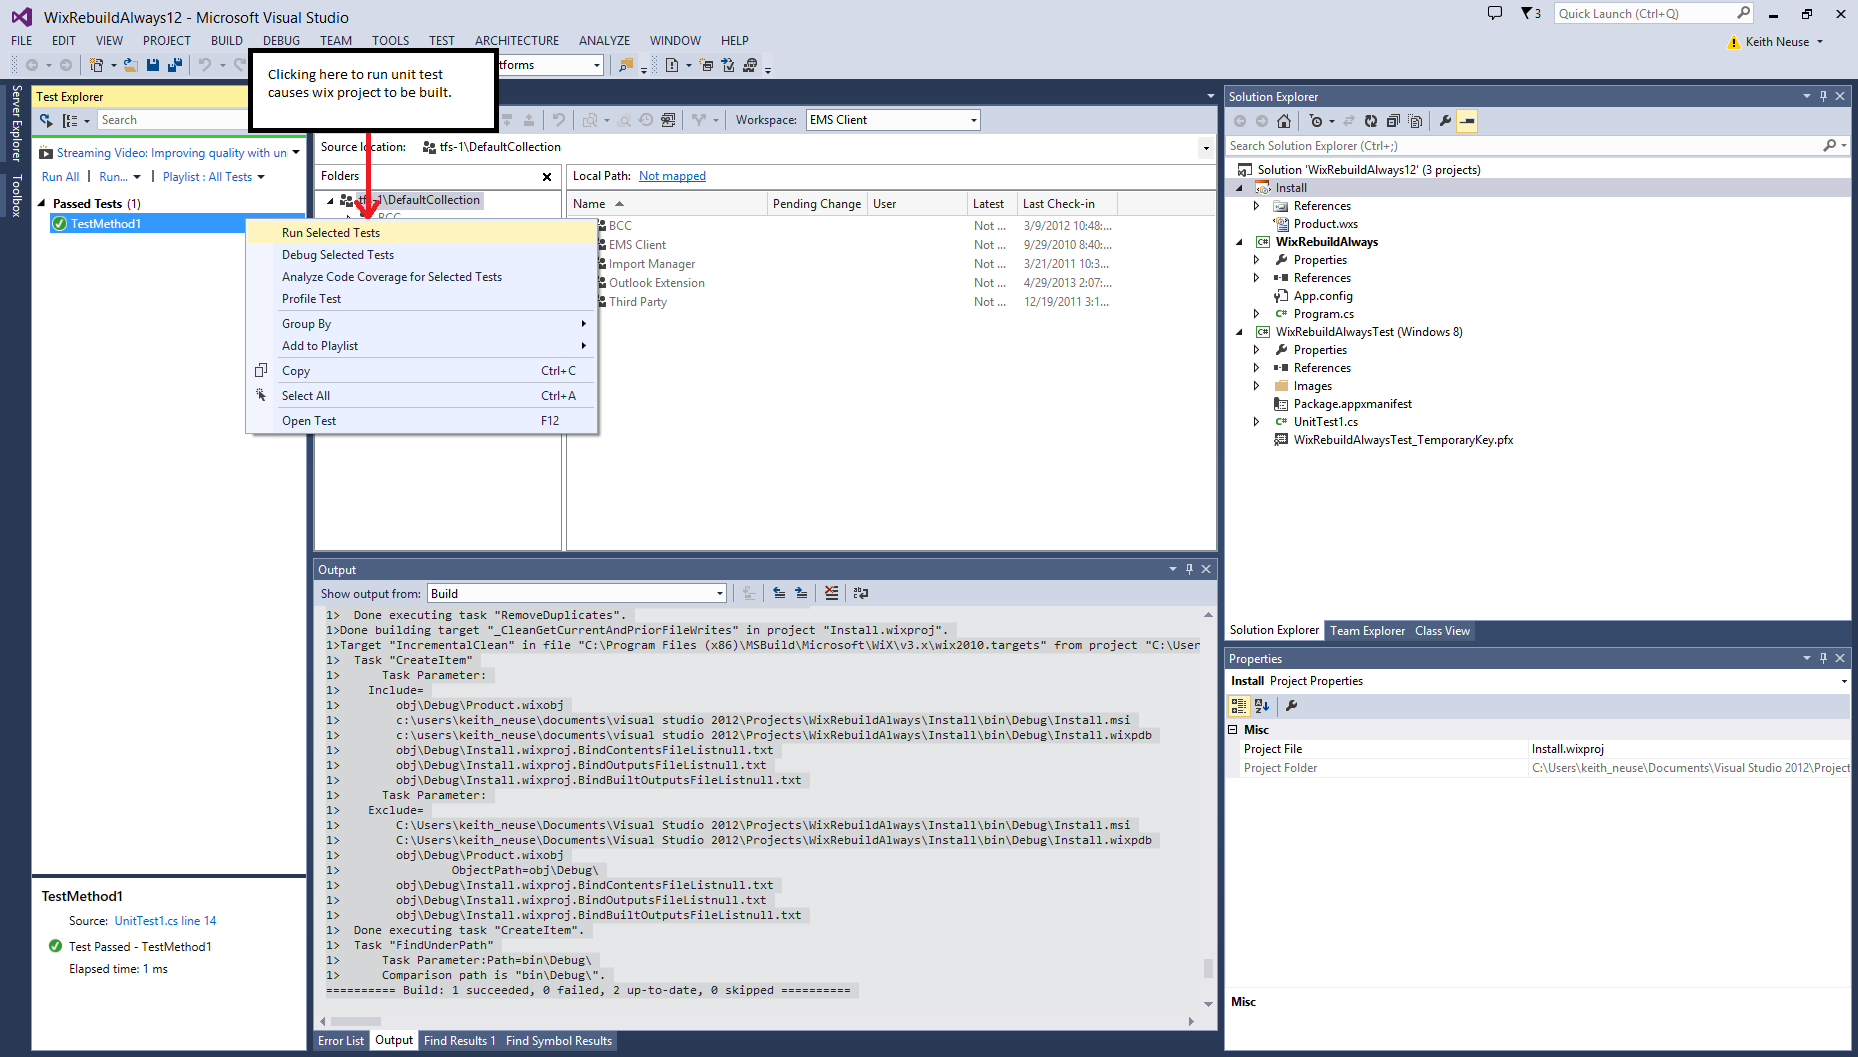 Wix projects rebuild when running unit tests in Visual Studio 2013